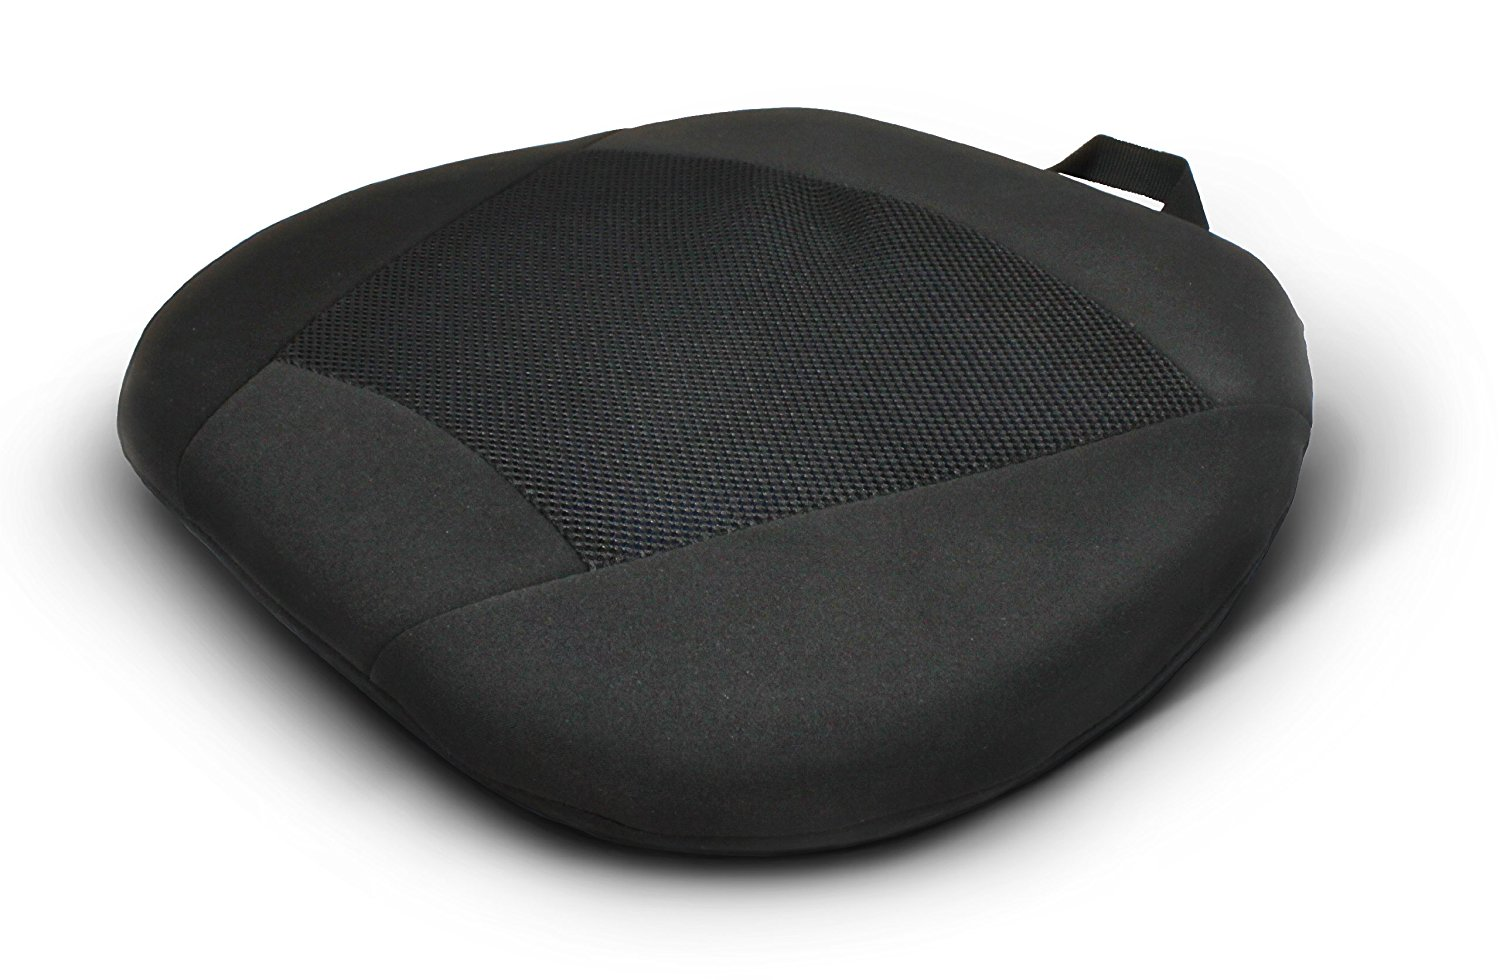 Kenley Silicone Gel Cushion For Mobility Wheelchair Seat